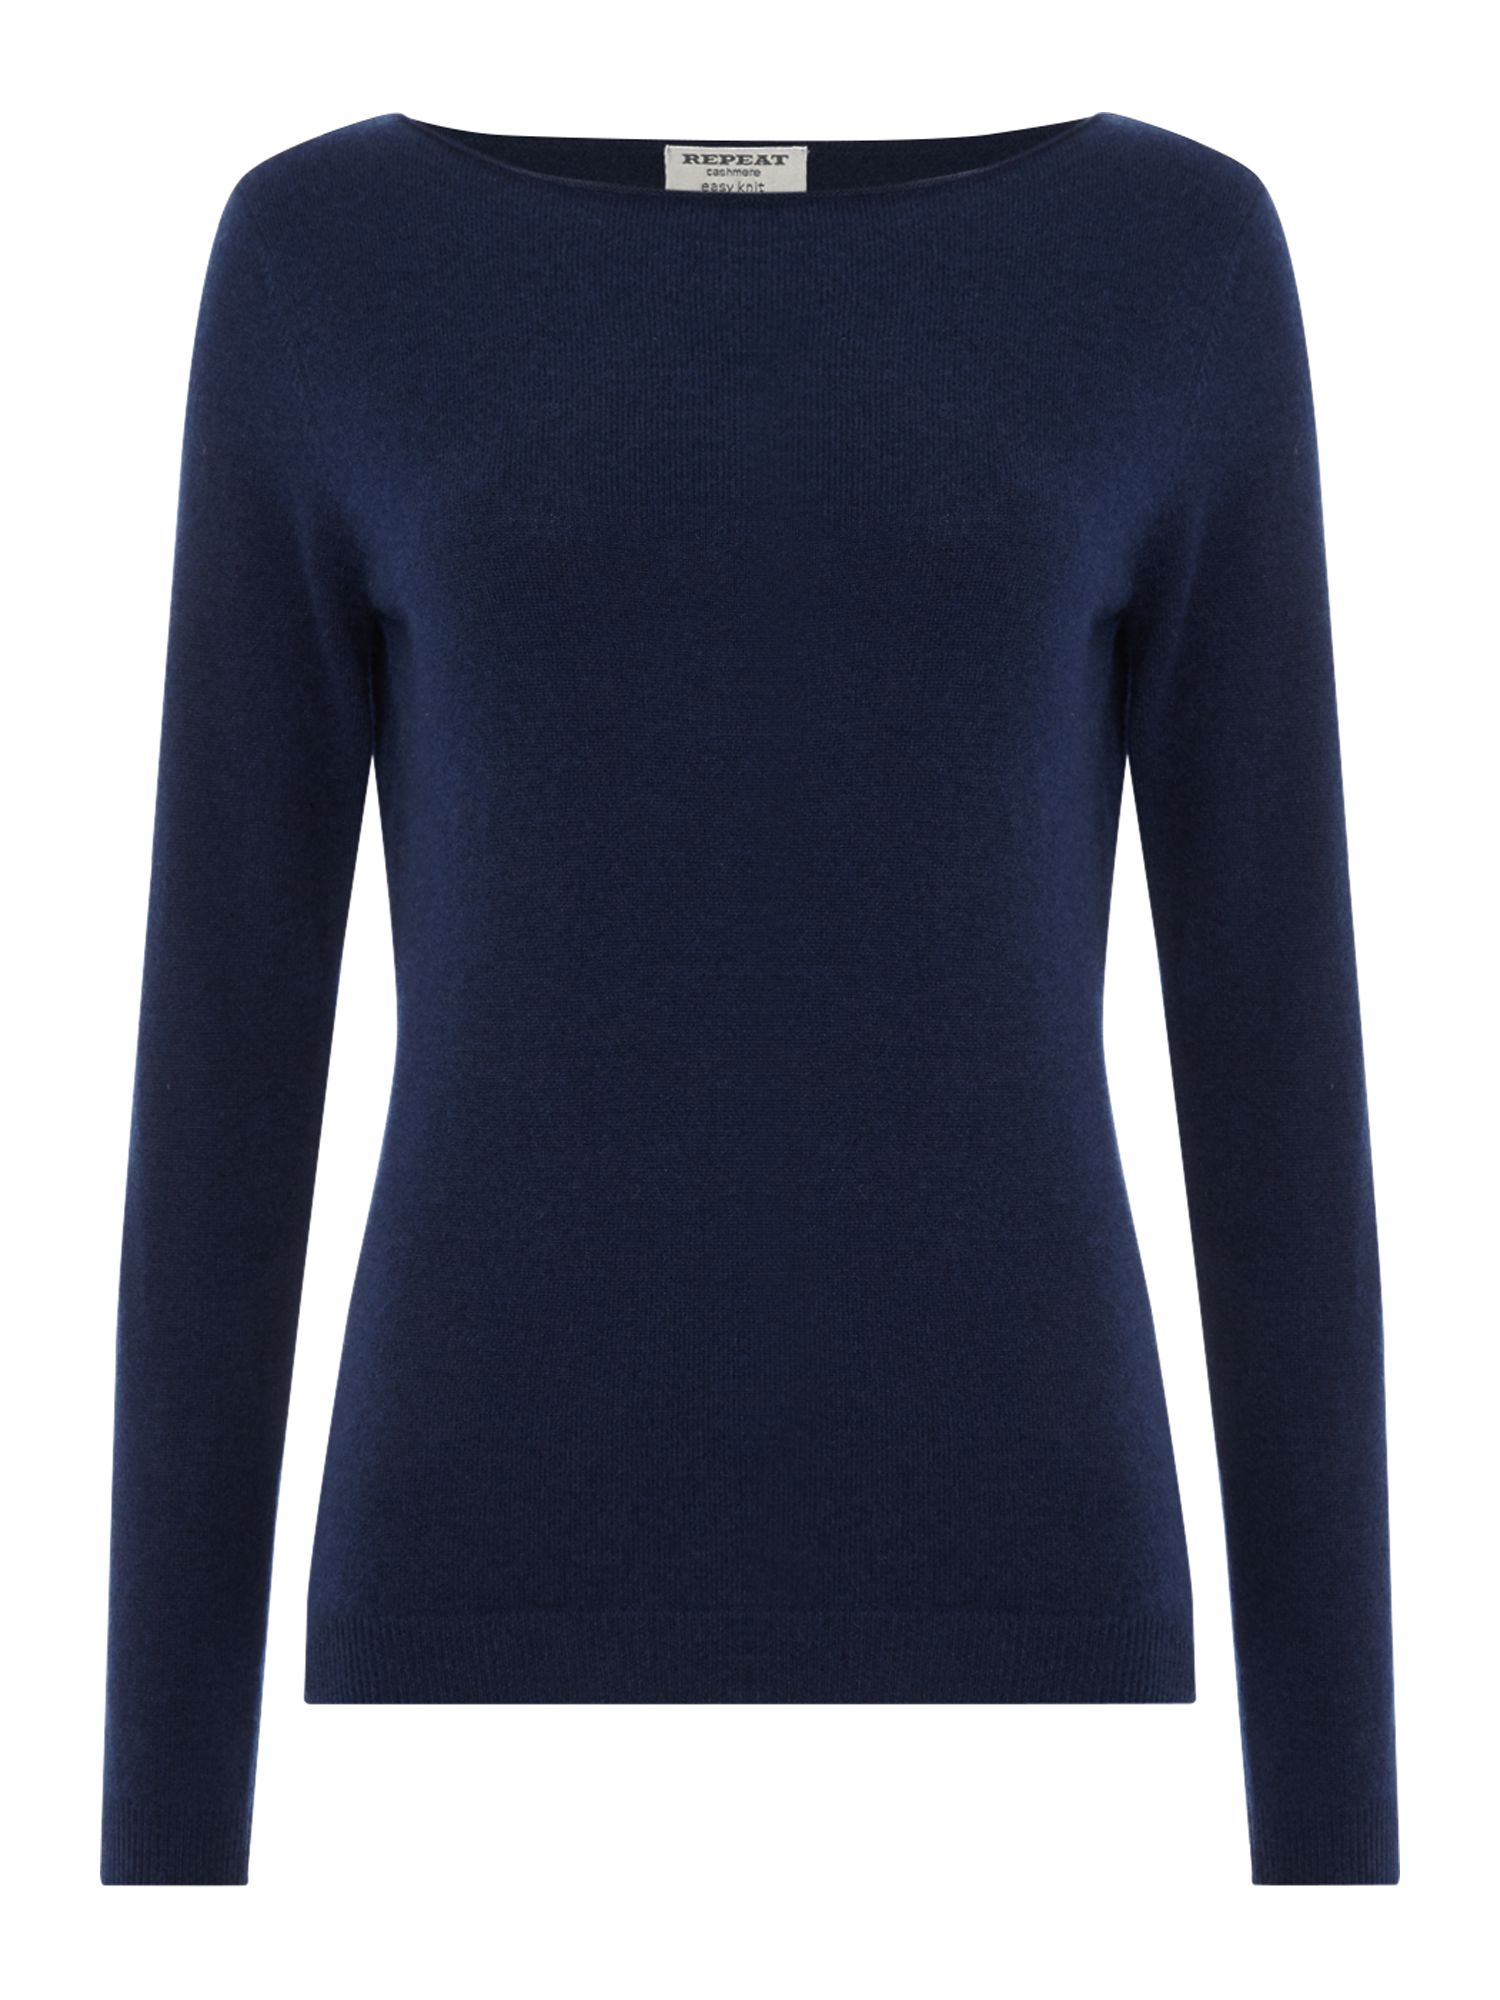 Repeat Cashmere Repeat Cashmere Round neck roll edge jumper, Navy